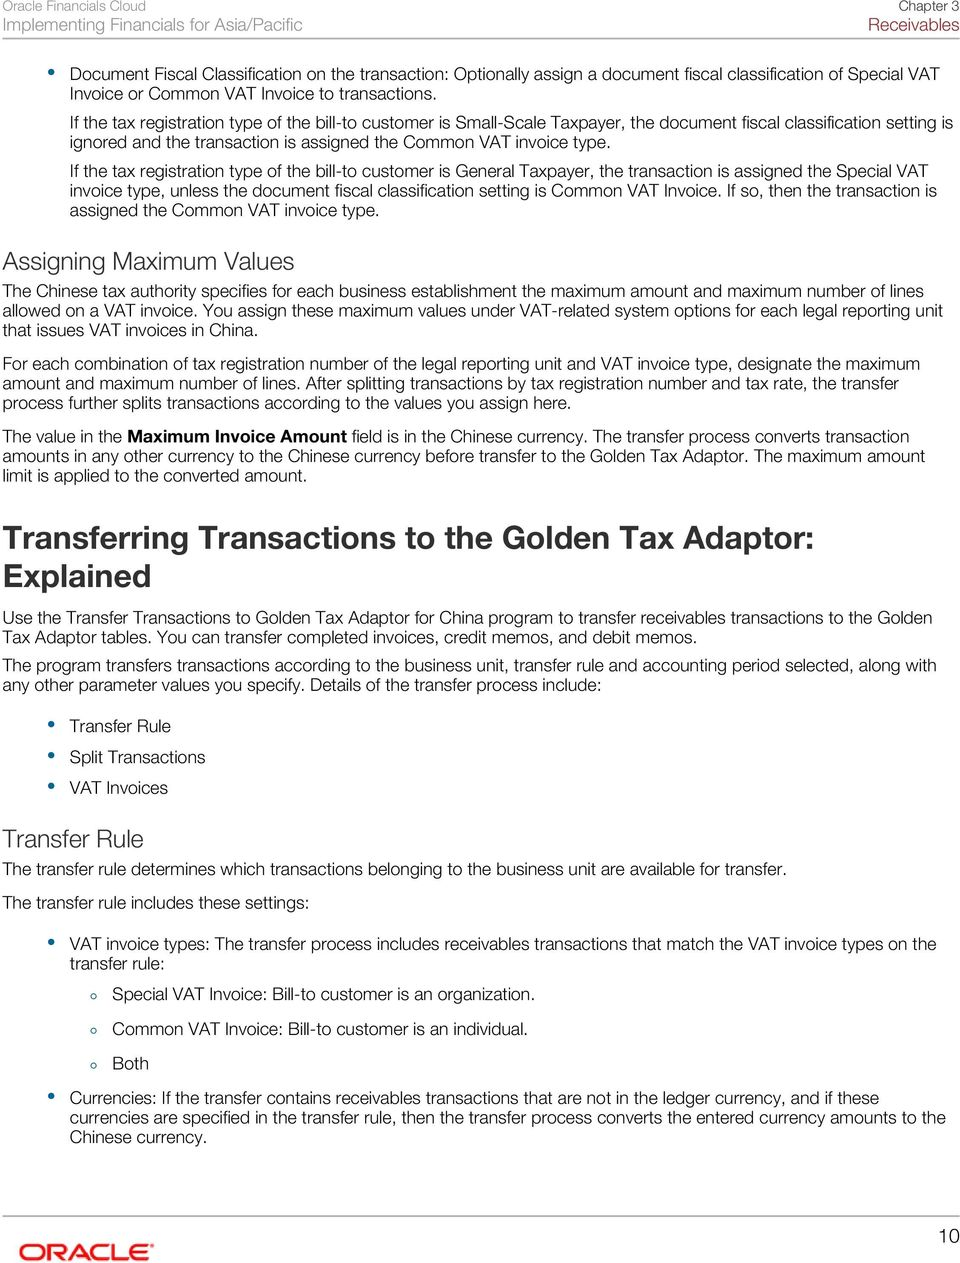 If the tax registration type of the bill-to customer is General Taxpayer, the transaction is assigned the Special VAT invoice type, unless the document fiscal classification setting is Common VAT